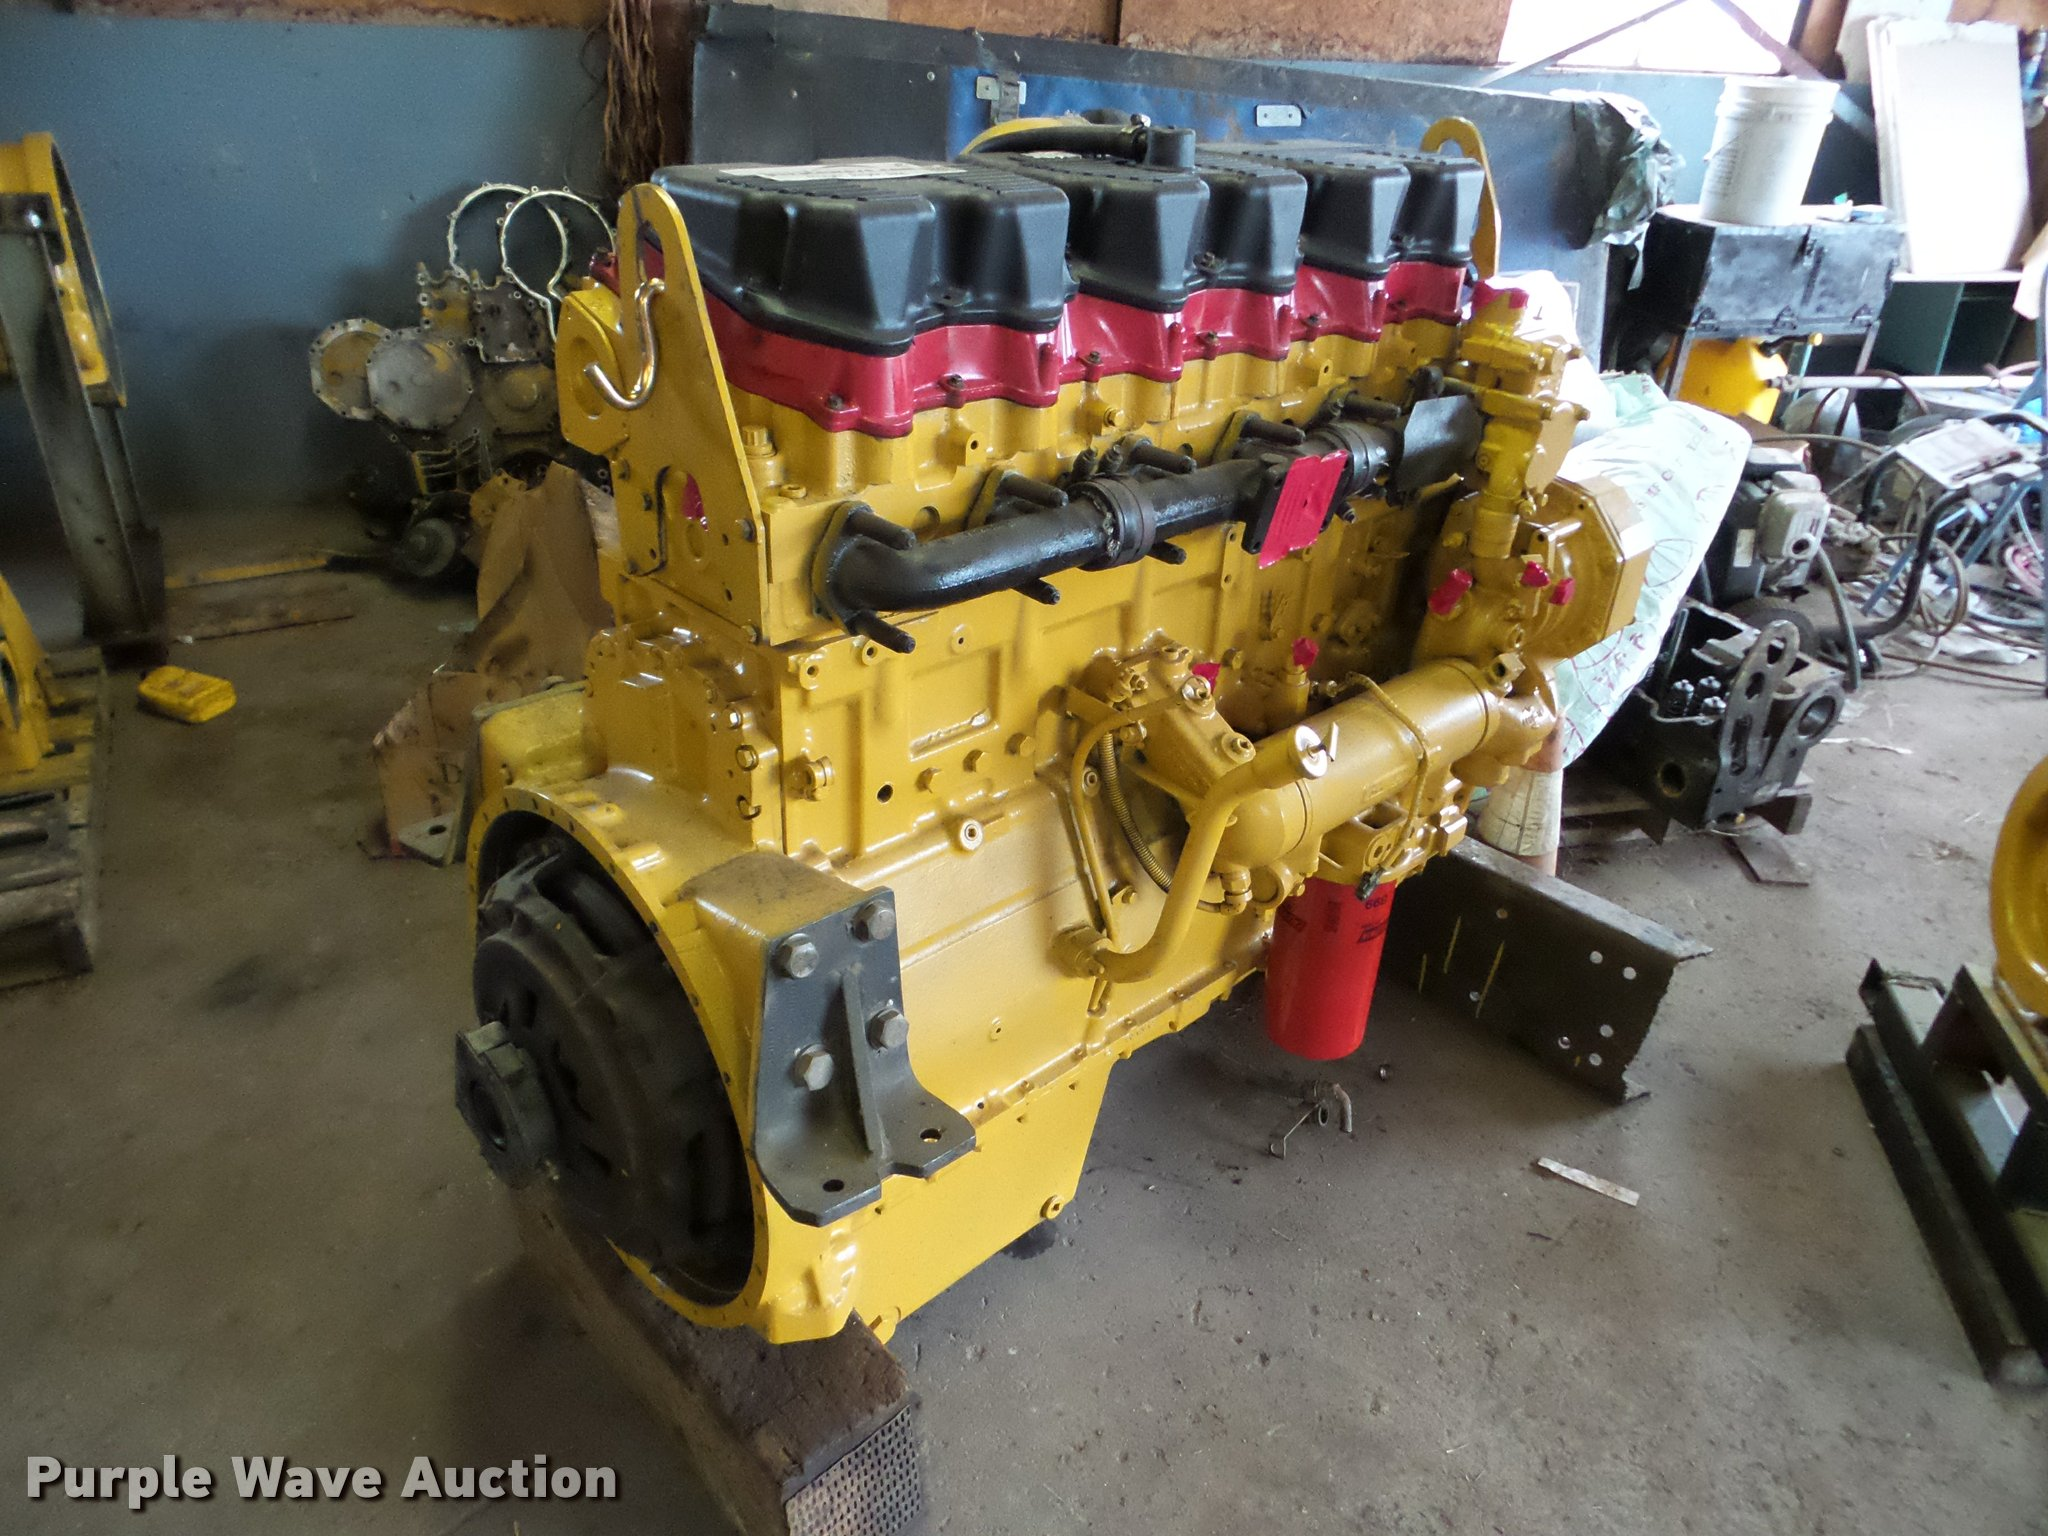 Da2978 Image For Item Da2978 Caterpillar C15 5ek Six Cylindersel Engine